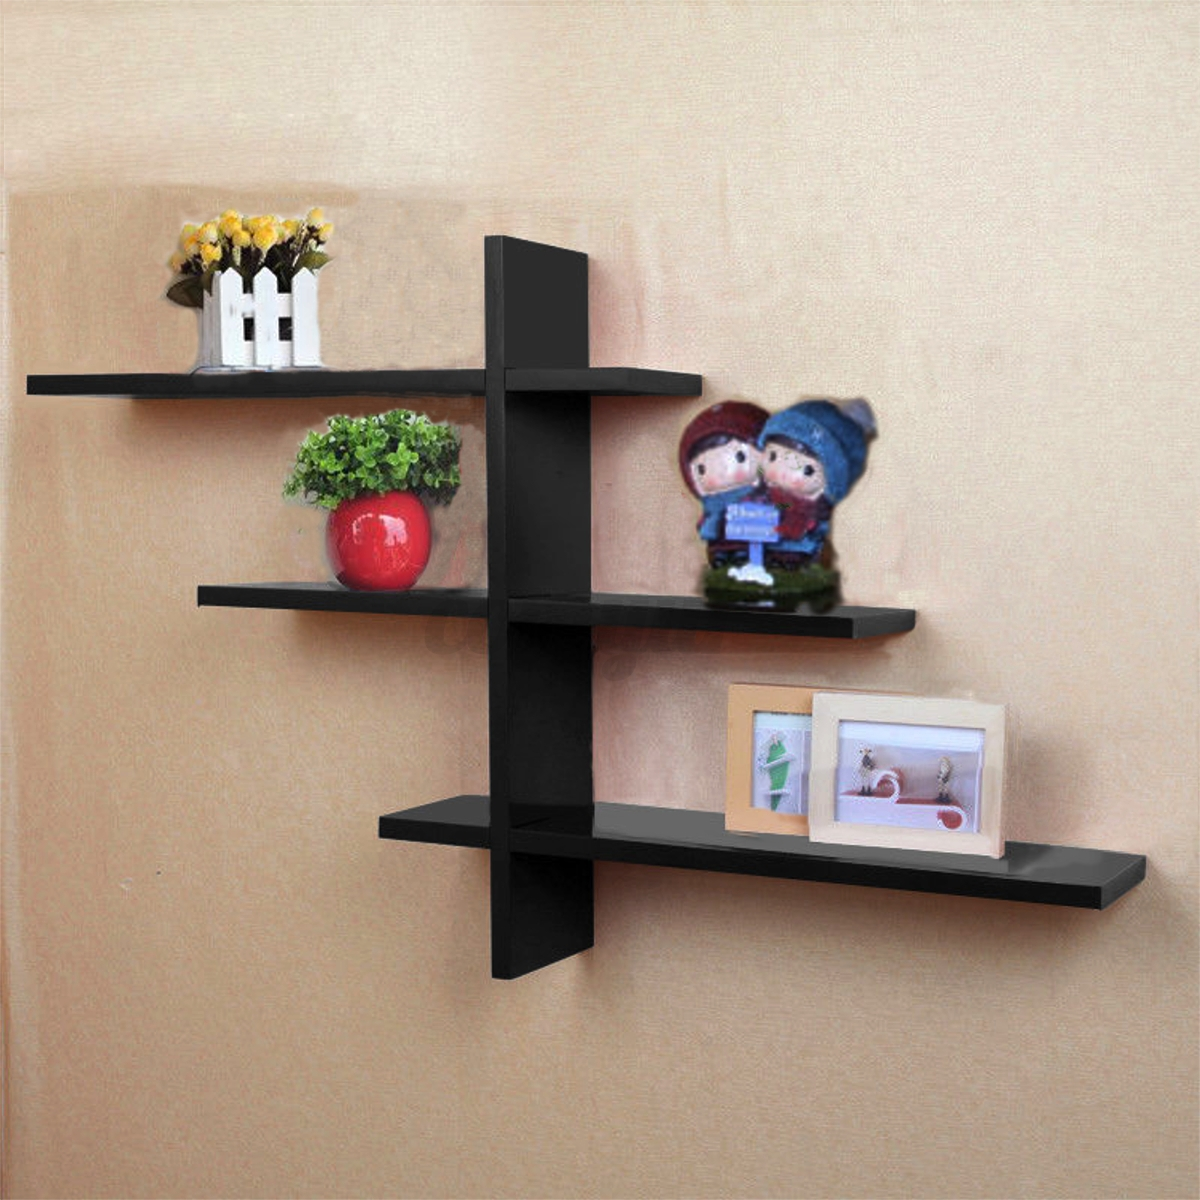 Marvelous photograph of Details about Set of 7 Retro T Shaped Floating Wall Shelves BOOK Shelf  with #A42732 color and 1200x1200 pixels